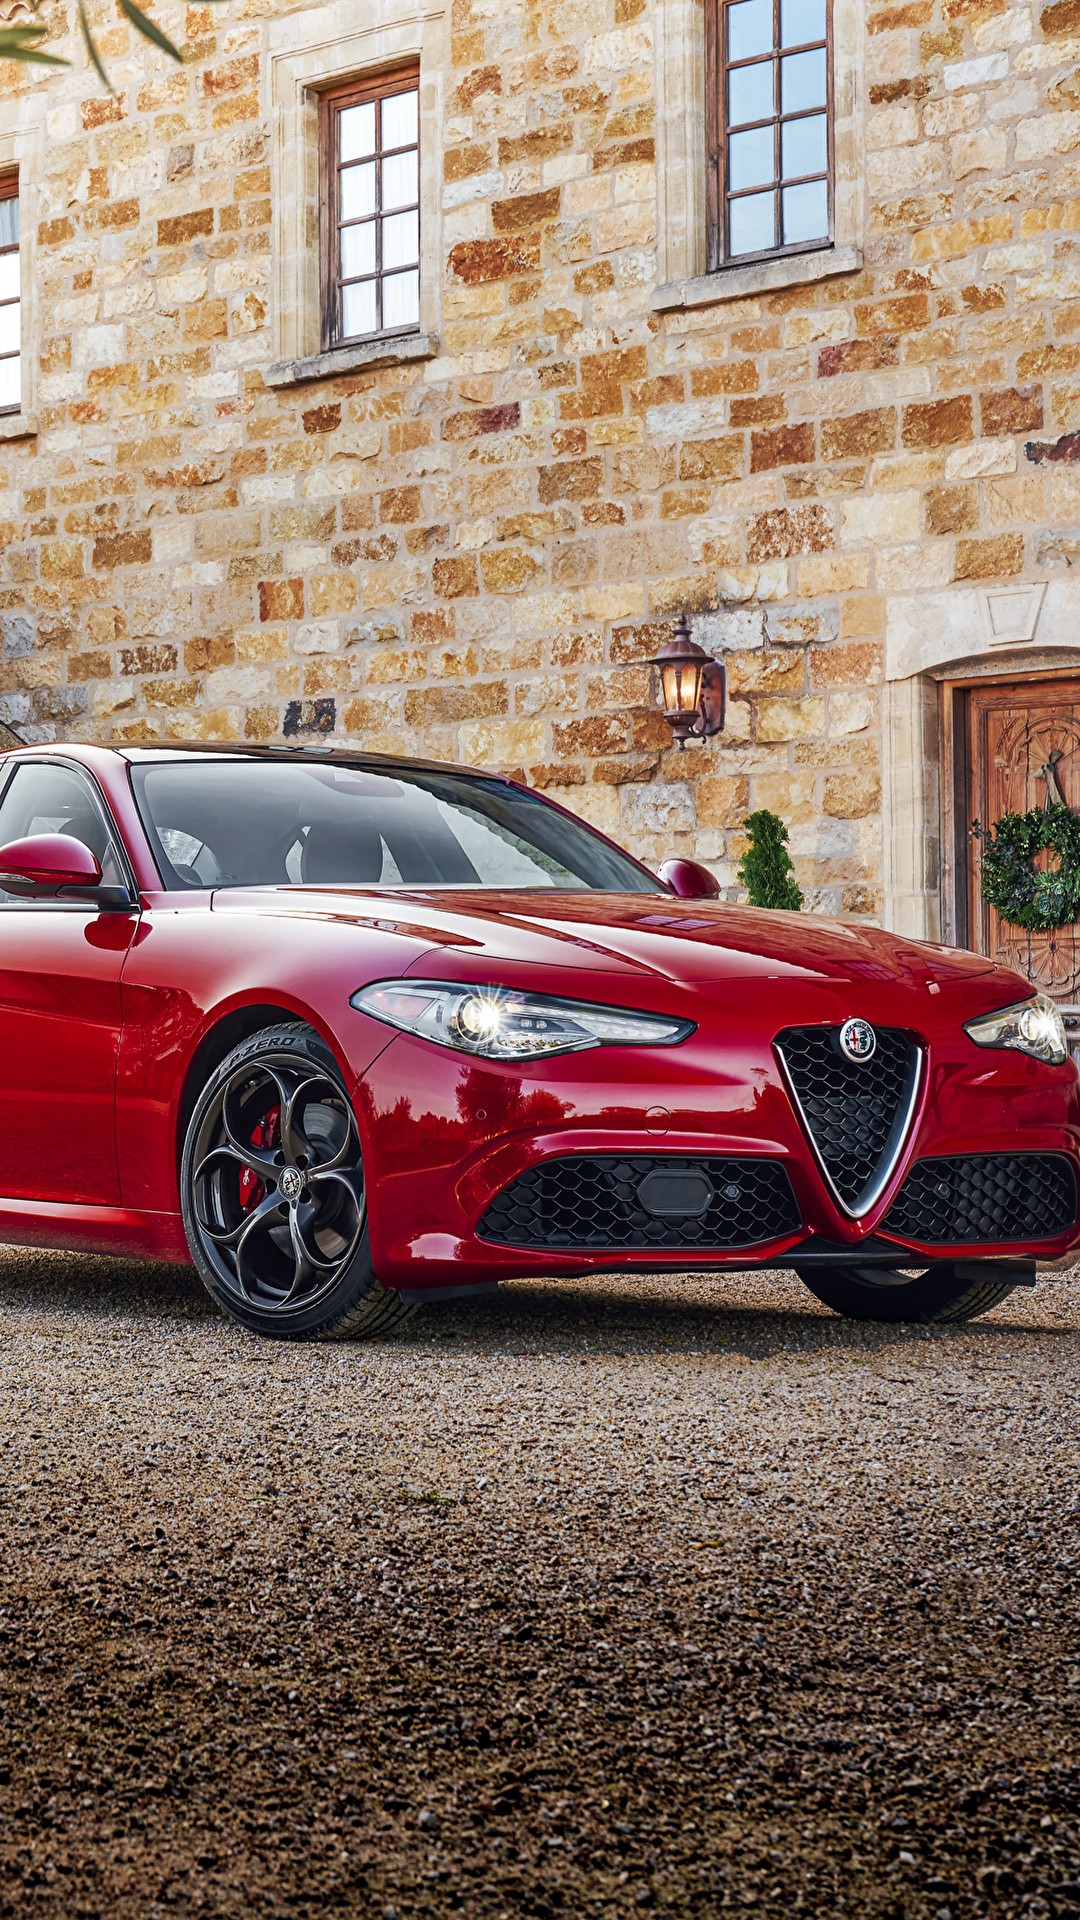 Wallpaper Alfa Romeo 2016 17 Giulia Red Cars Metallic 1080x1920